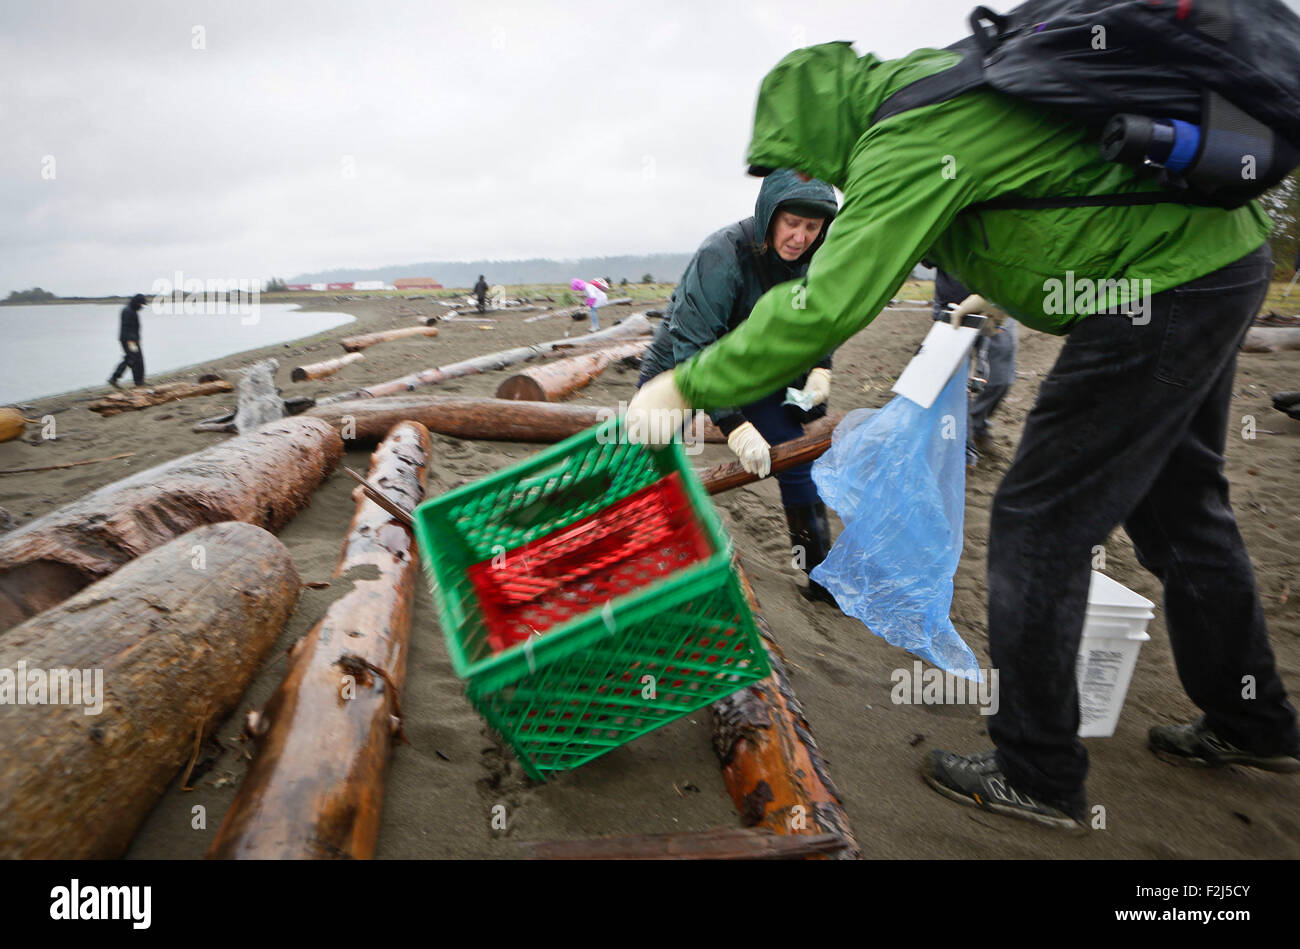 Vancouver, Canada. 19th Sep, 2015. Participants pick up a plastic case left at Iona Beach in Richmond, Canada, Sept. - Stock Image